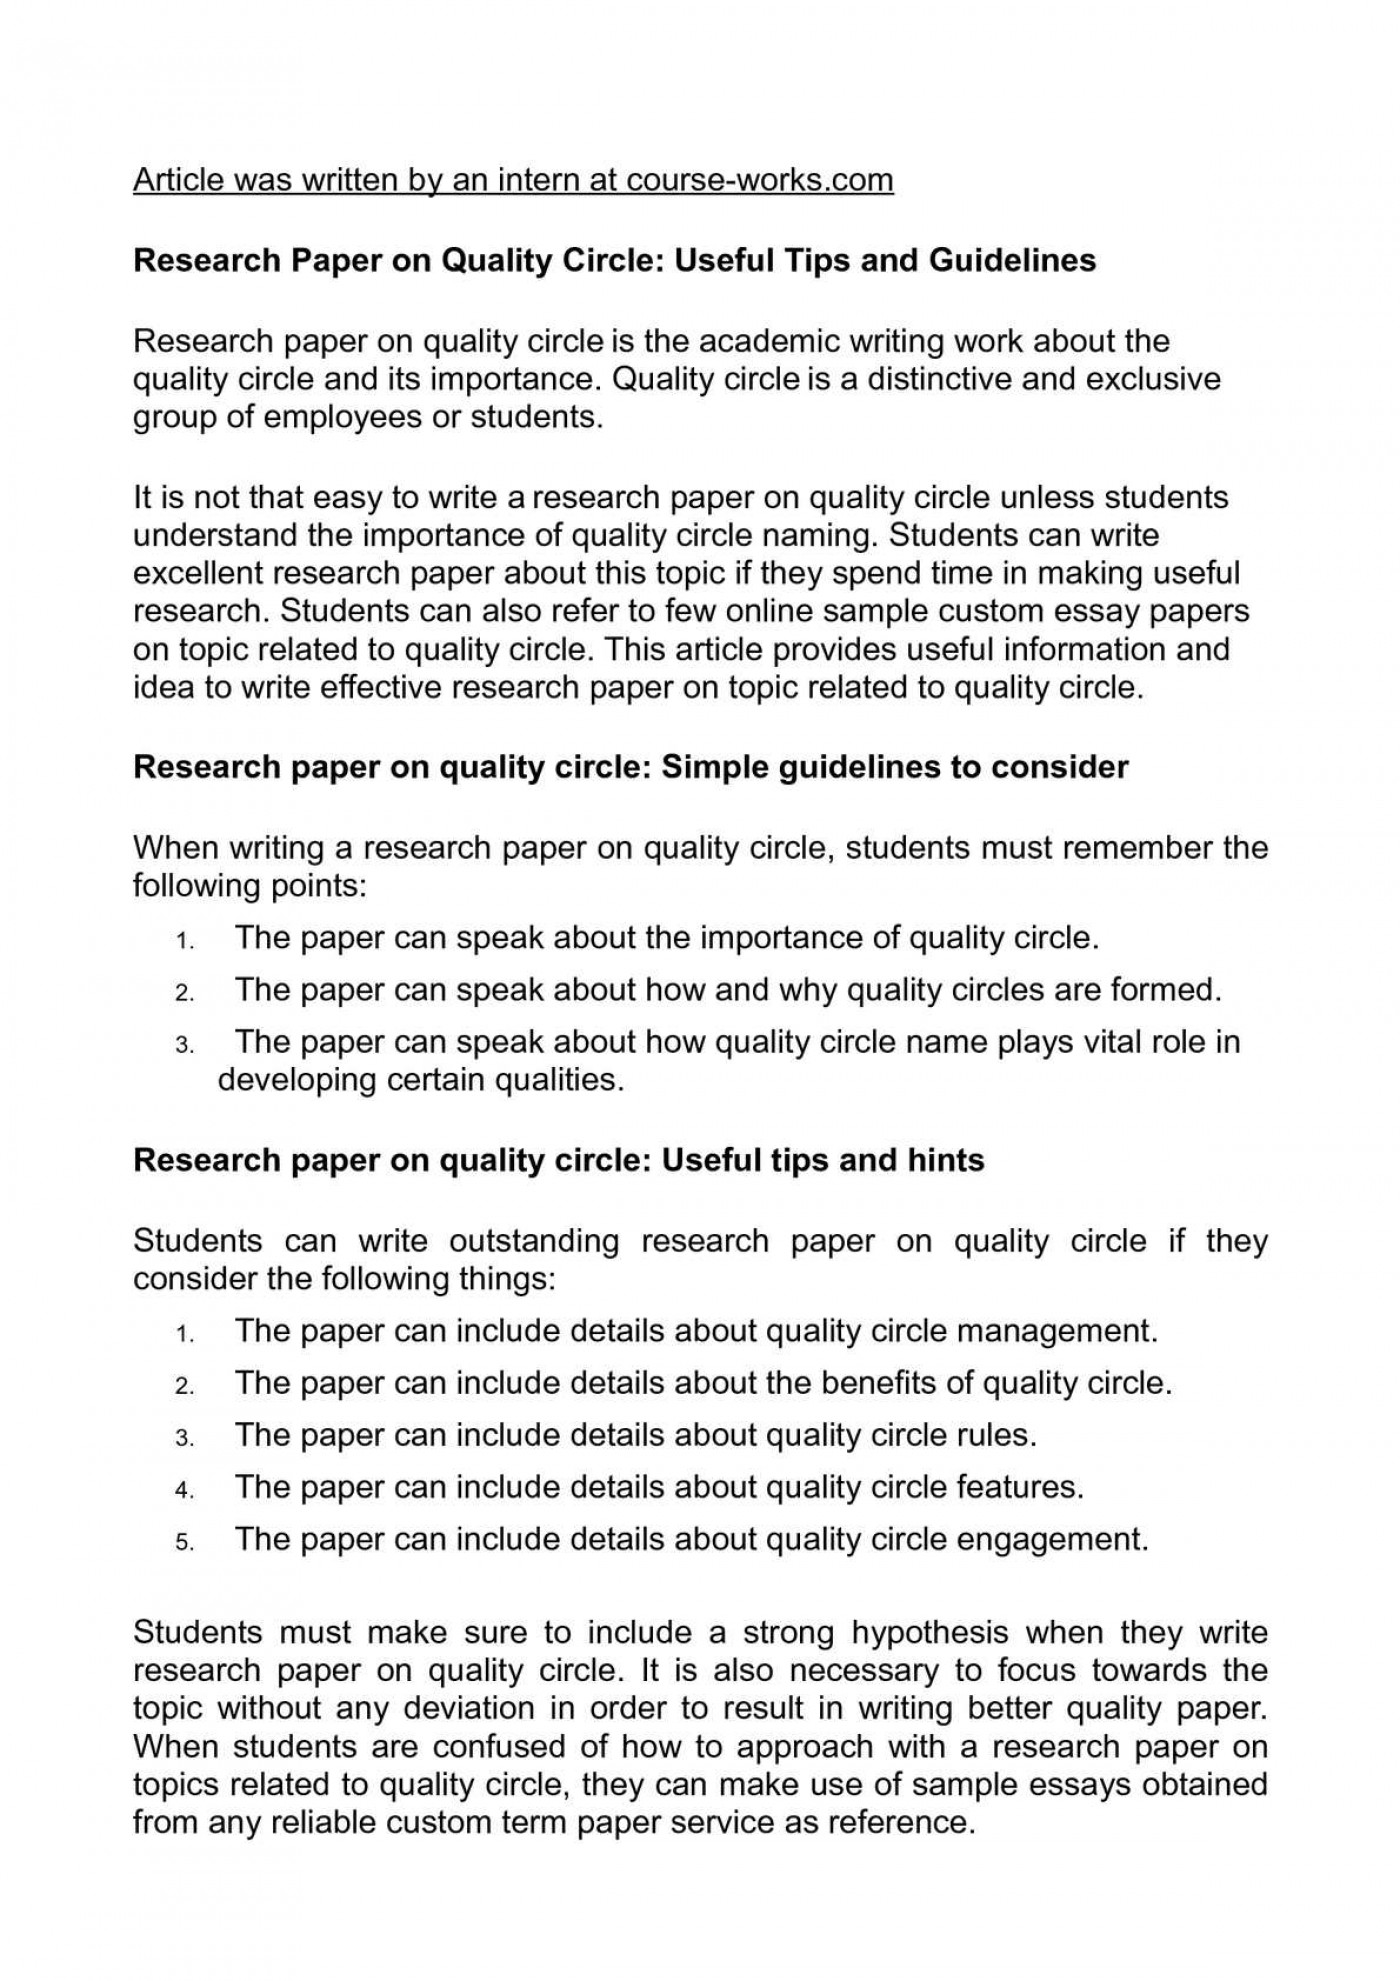 007 P1 Topics To Write Research Paper Beautiful On A History Economics Biology 1400